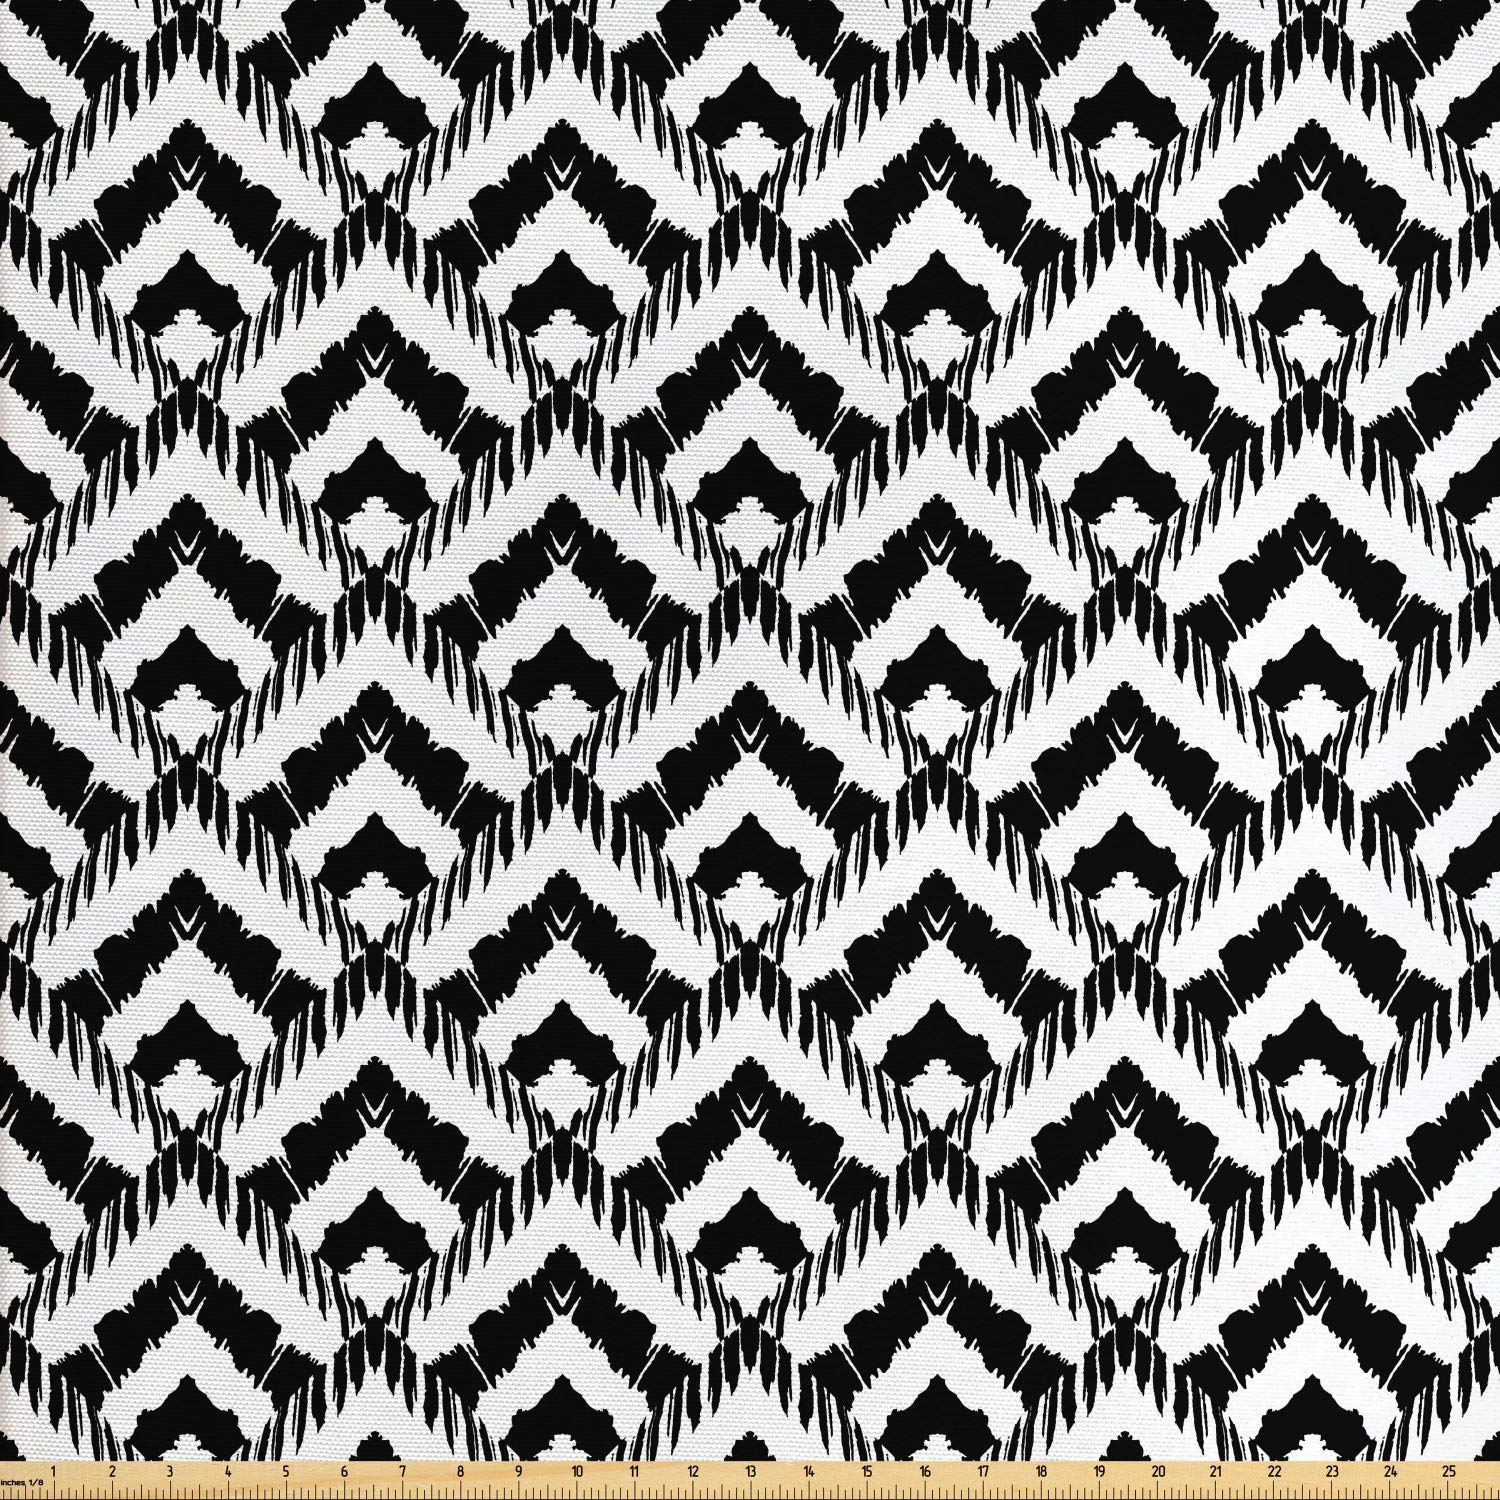 Ambesonne Black and White Fabric by The Yard, Hand Drawn Herringbone Lines Pattern Monochrome Geometric Arrangement, Decorative Fabric for Upholstery and Home Accents, 2 Yards, Black White